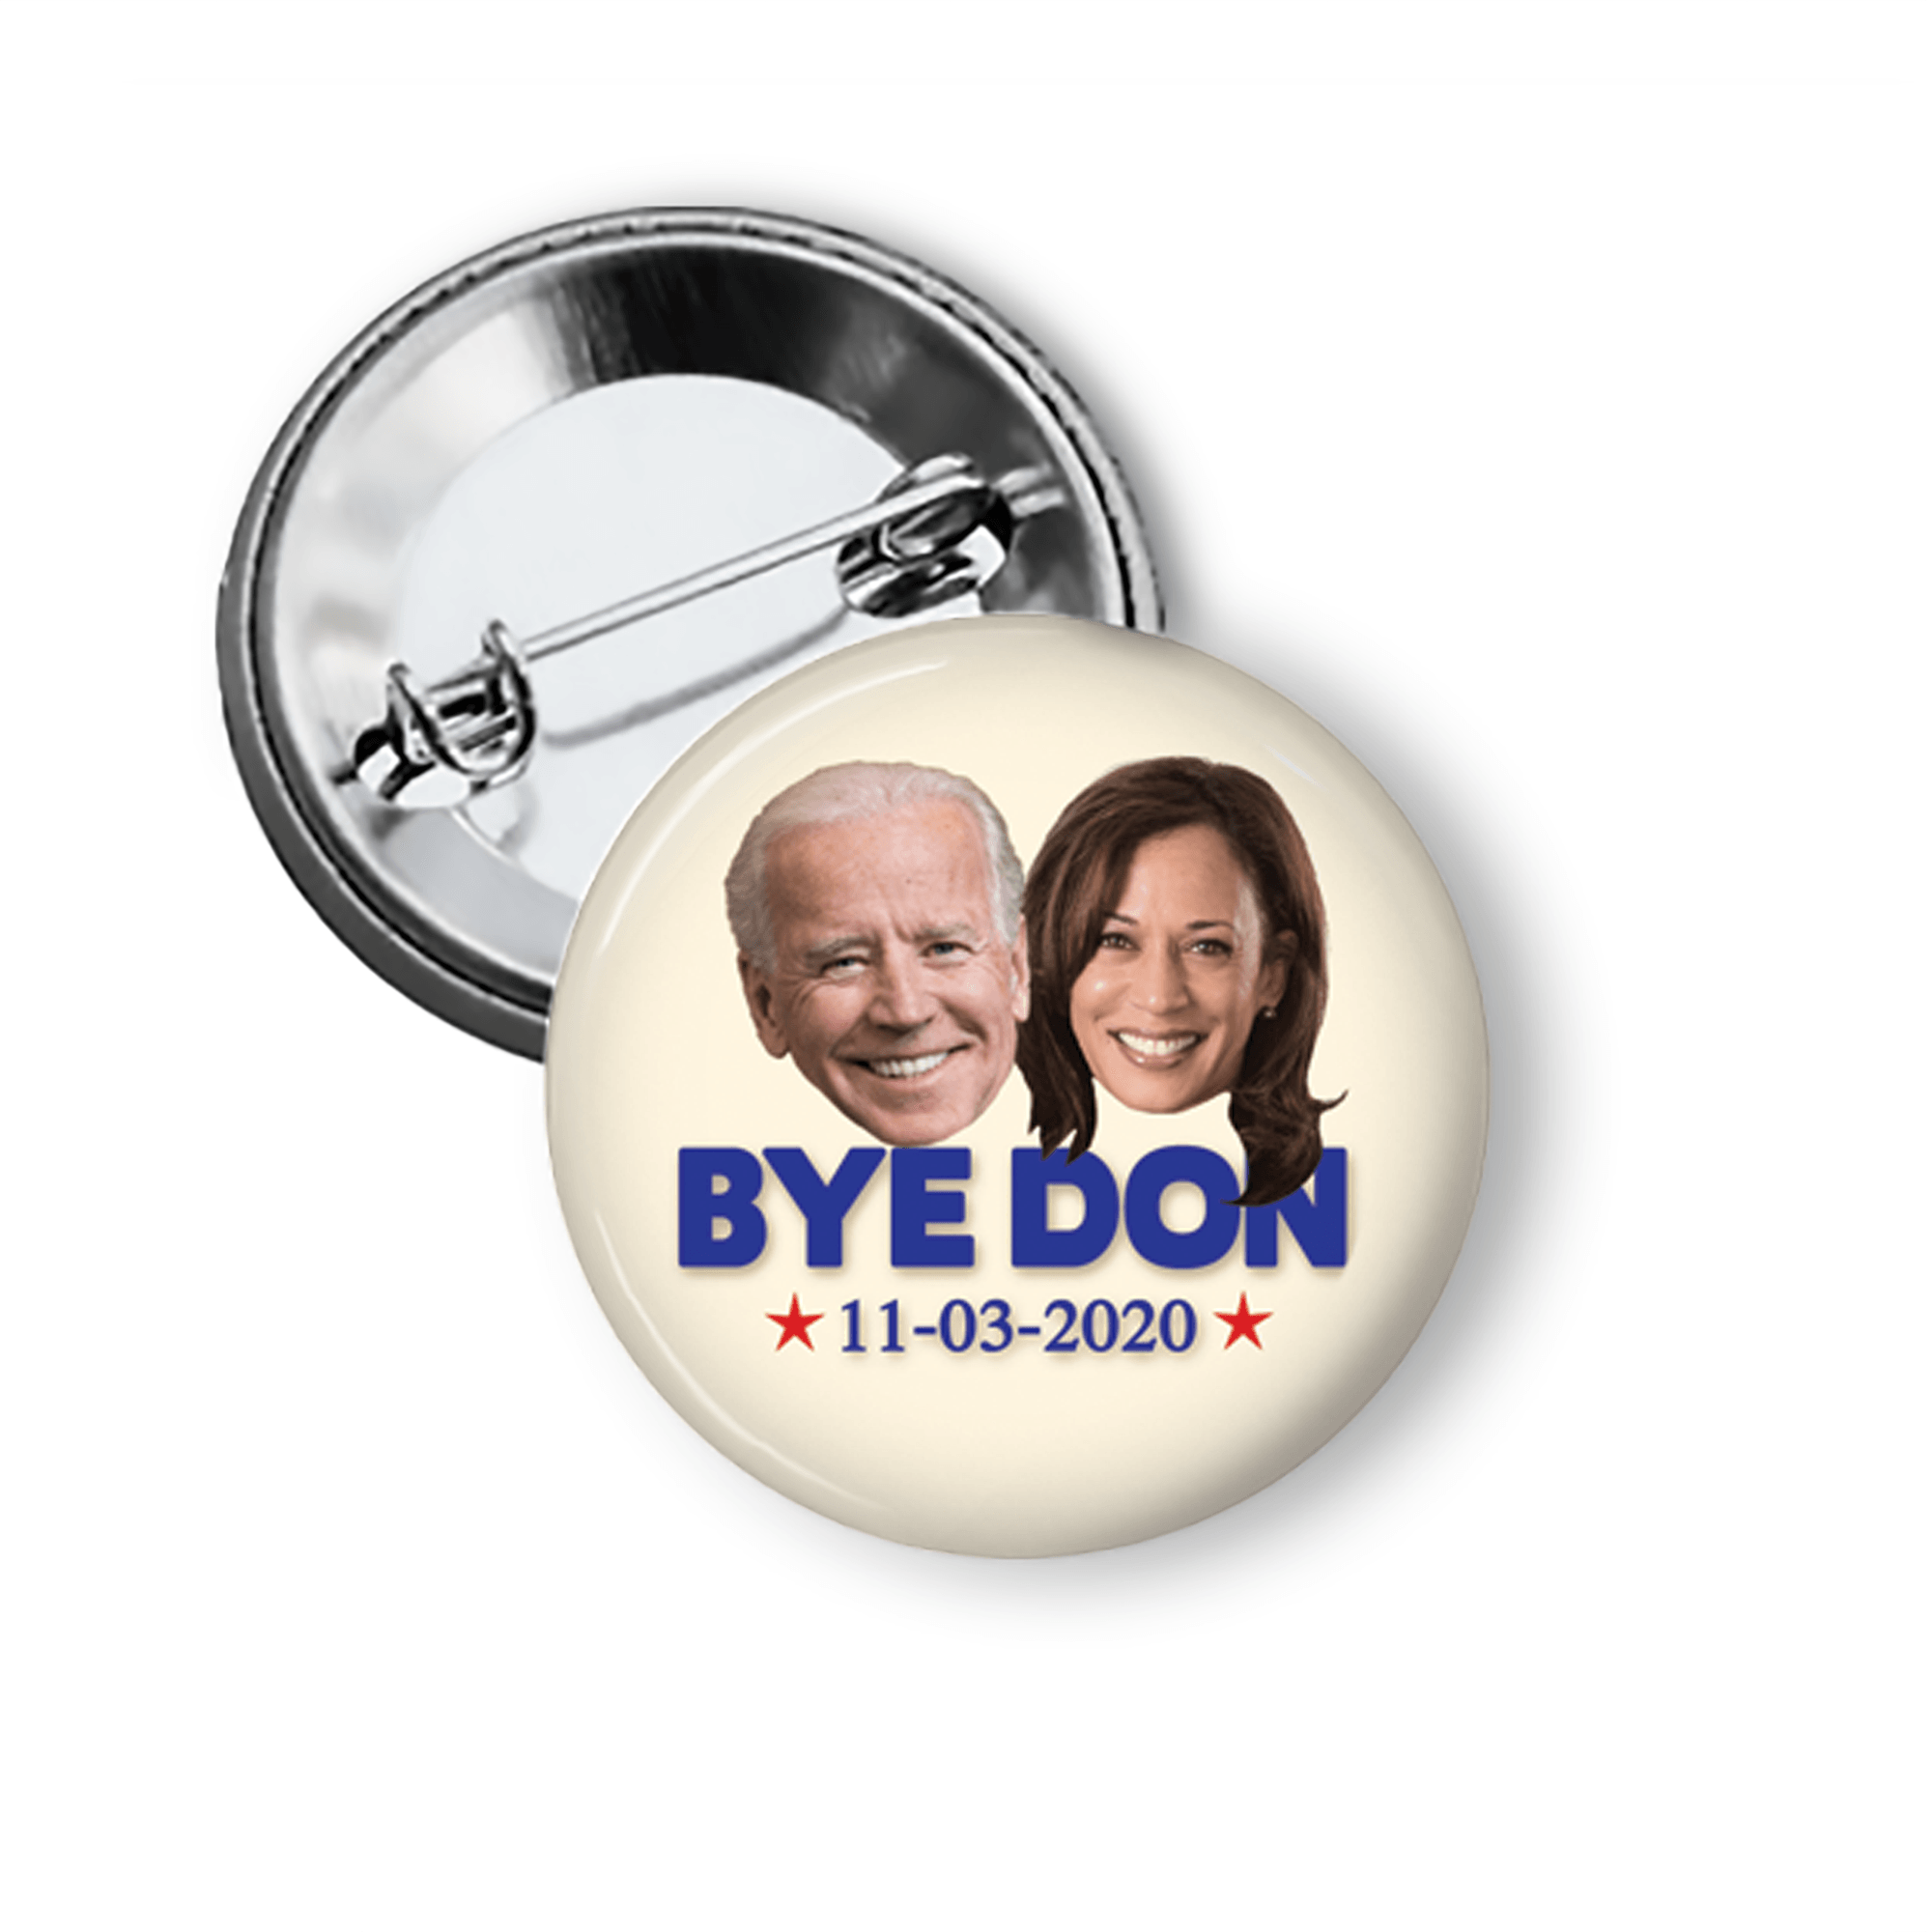 Joe Biden Kamala Harris Bye Don 2020 Campaign Button Pins Buttons For the People